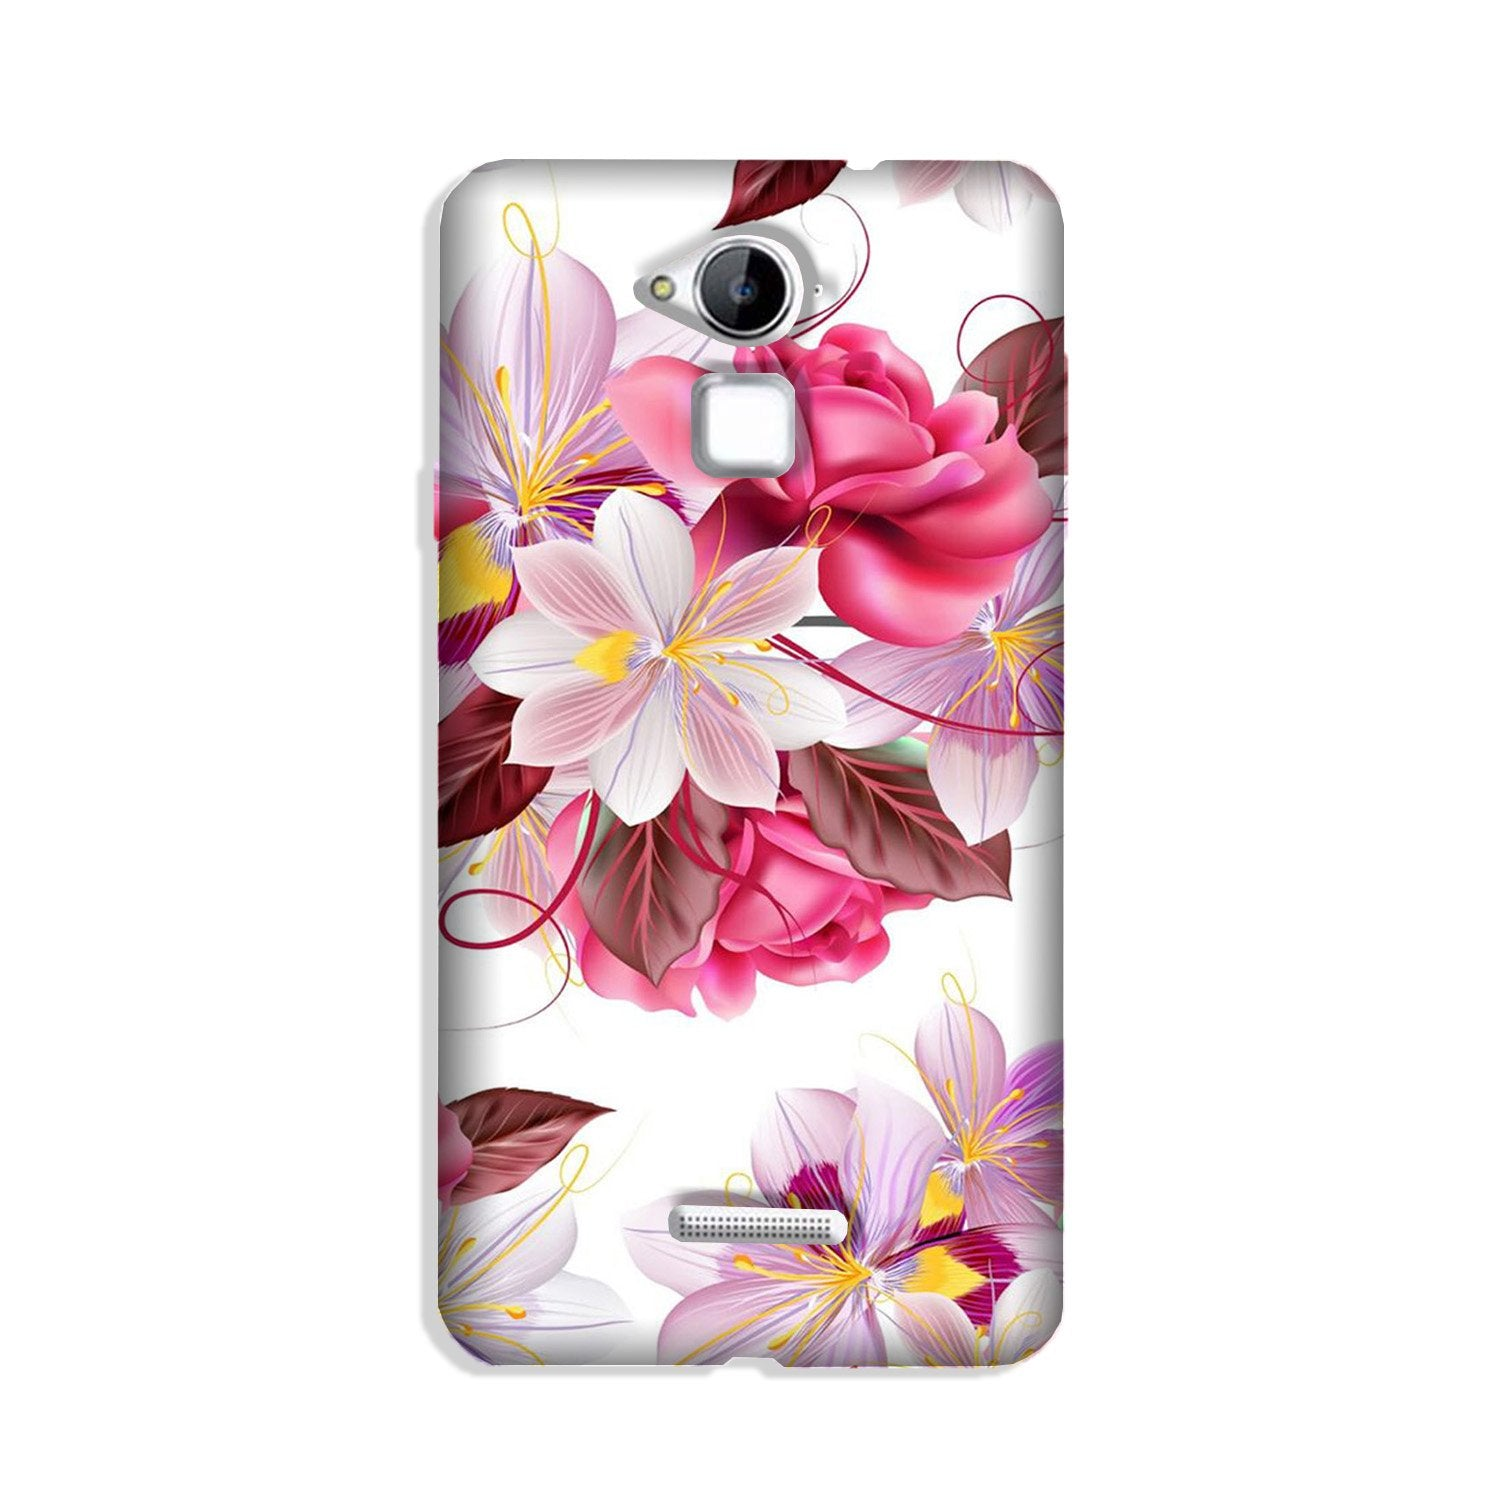 Beautiful flowers Case for Coolpad Note 3